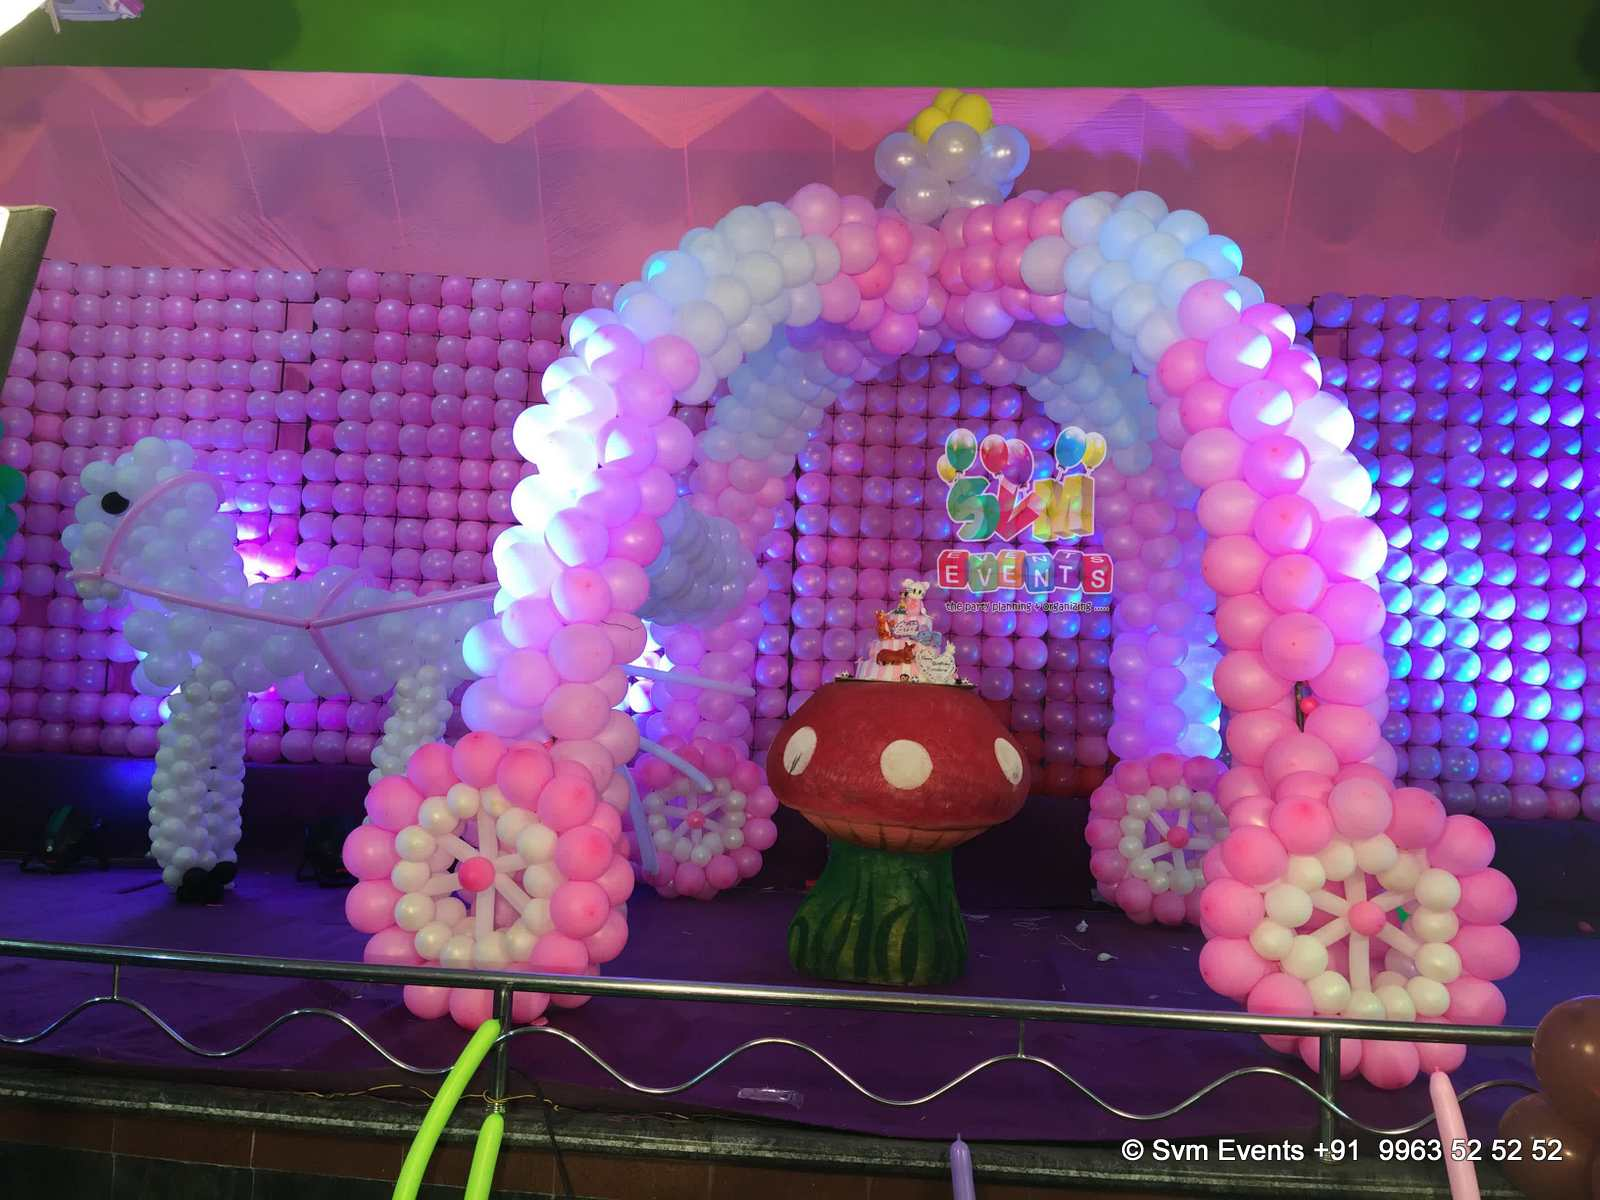 Svm events chariot theme for kids 1st birthday party and for 1st birthday party decoration ideas boys